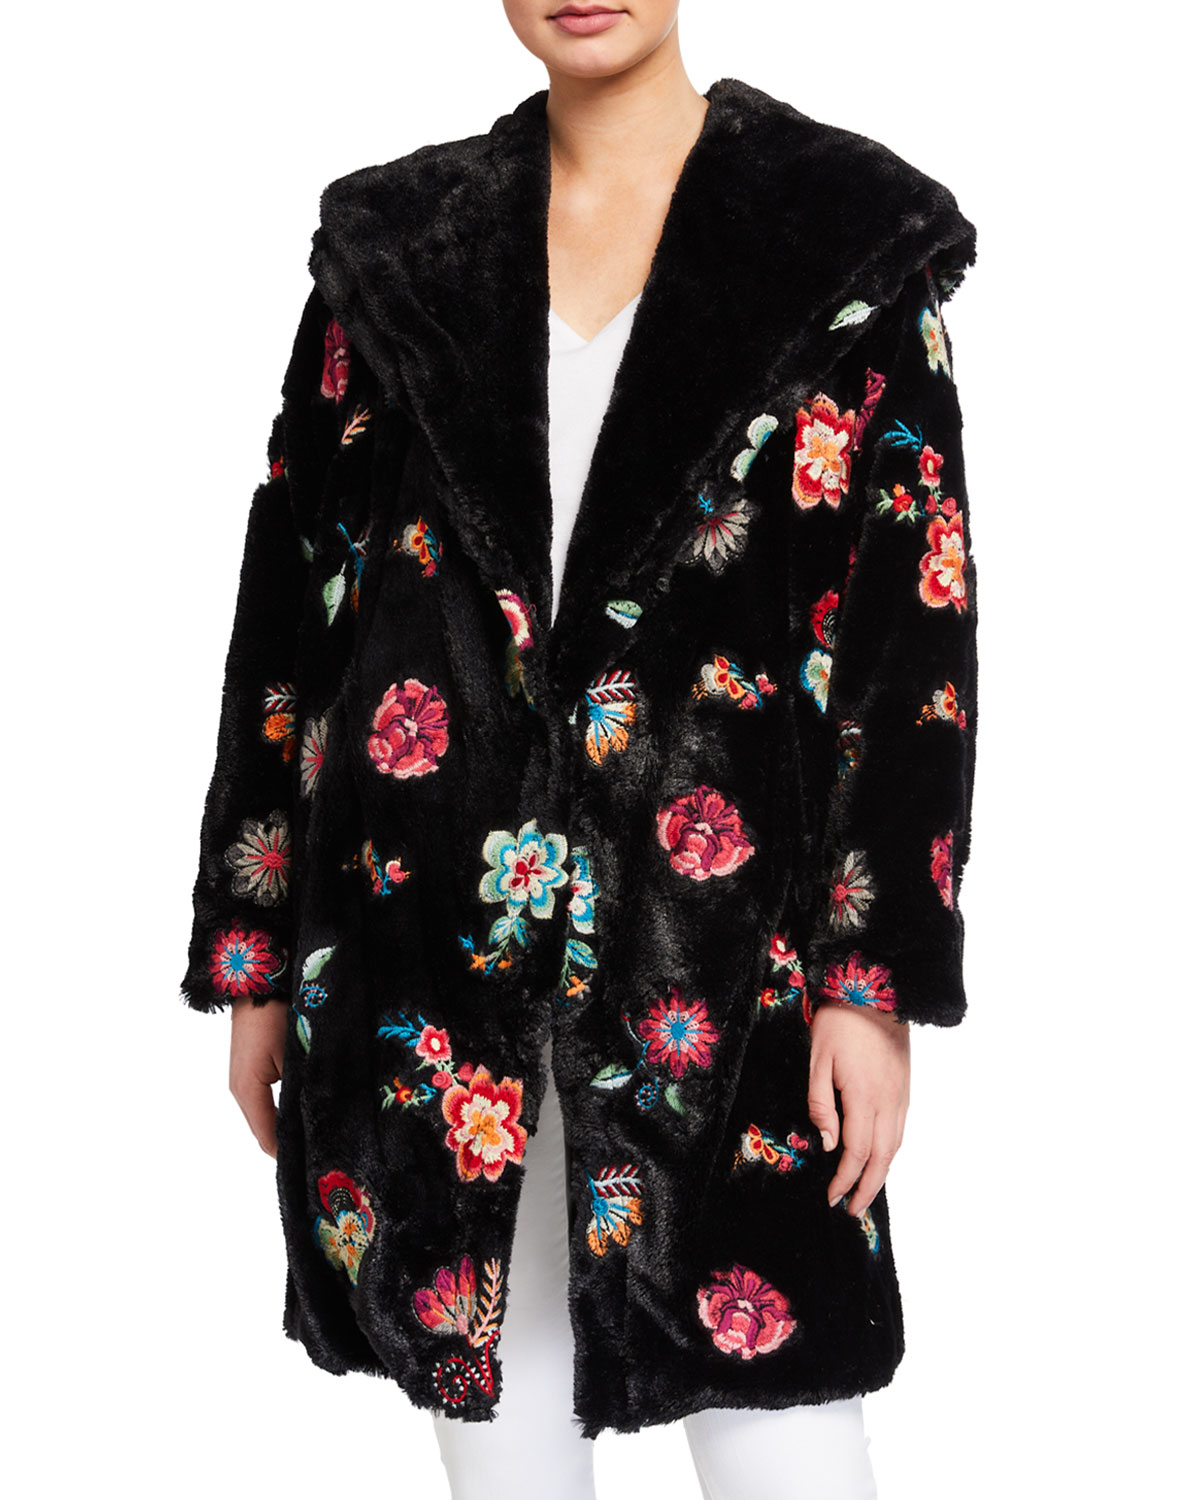 Johnny Was Coats MYANMAR FAUX-FUR EMBROIDERED FLOWER COAT